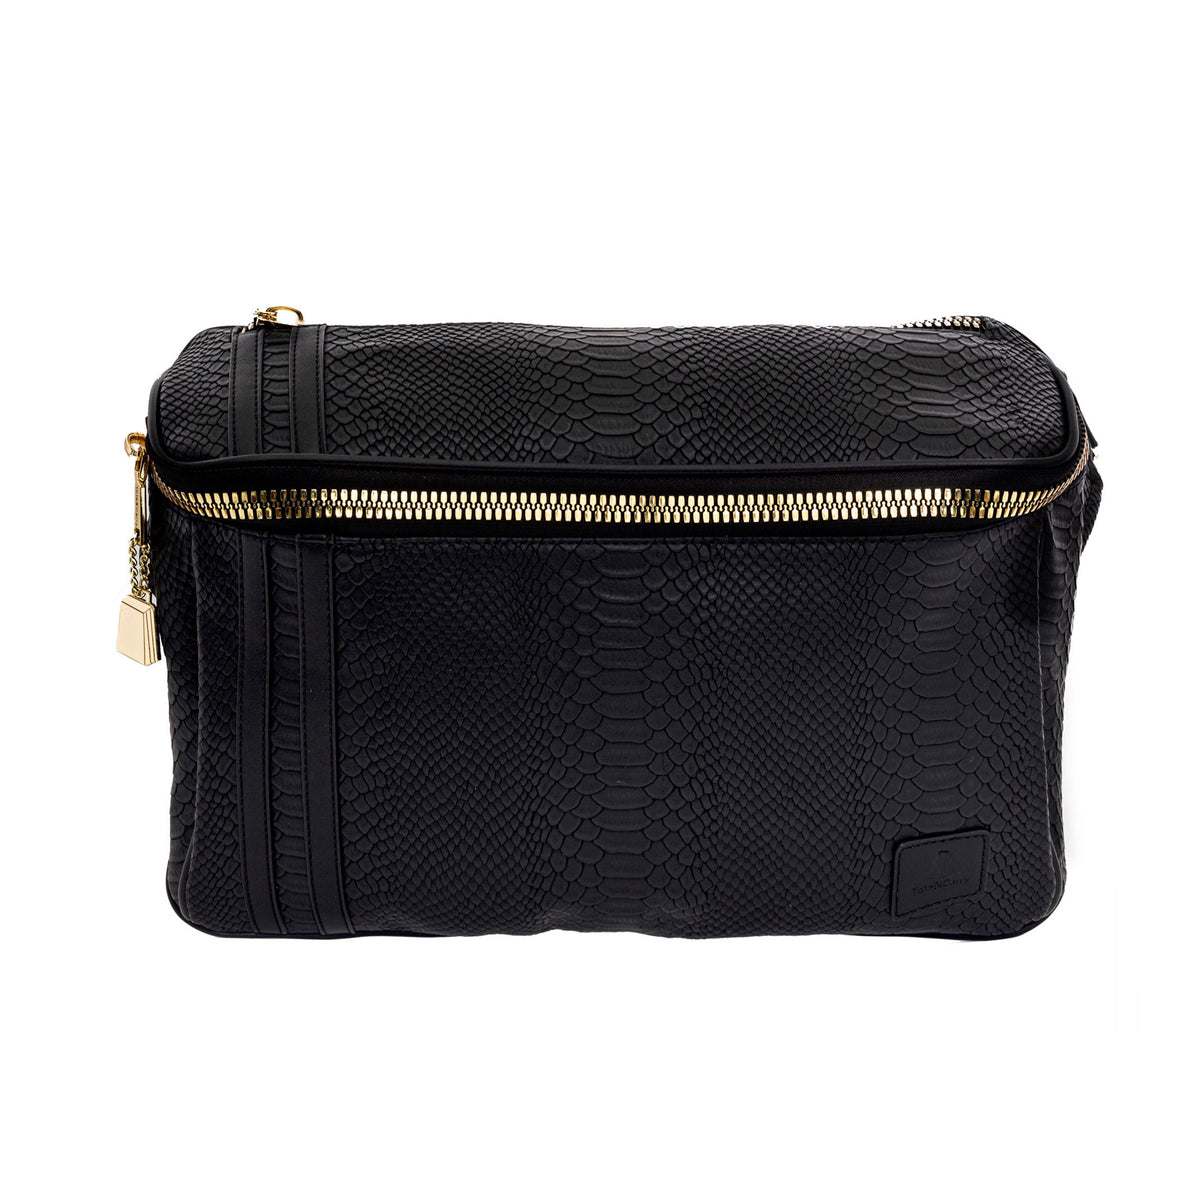 Black Apollo Messenger Bag